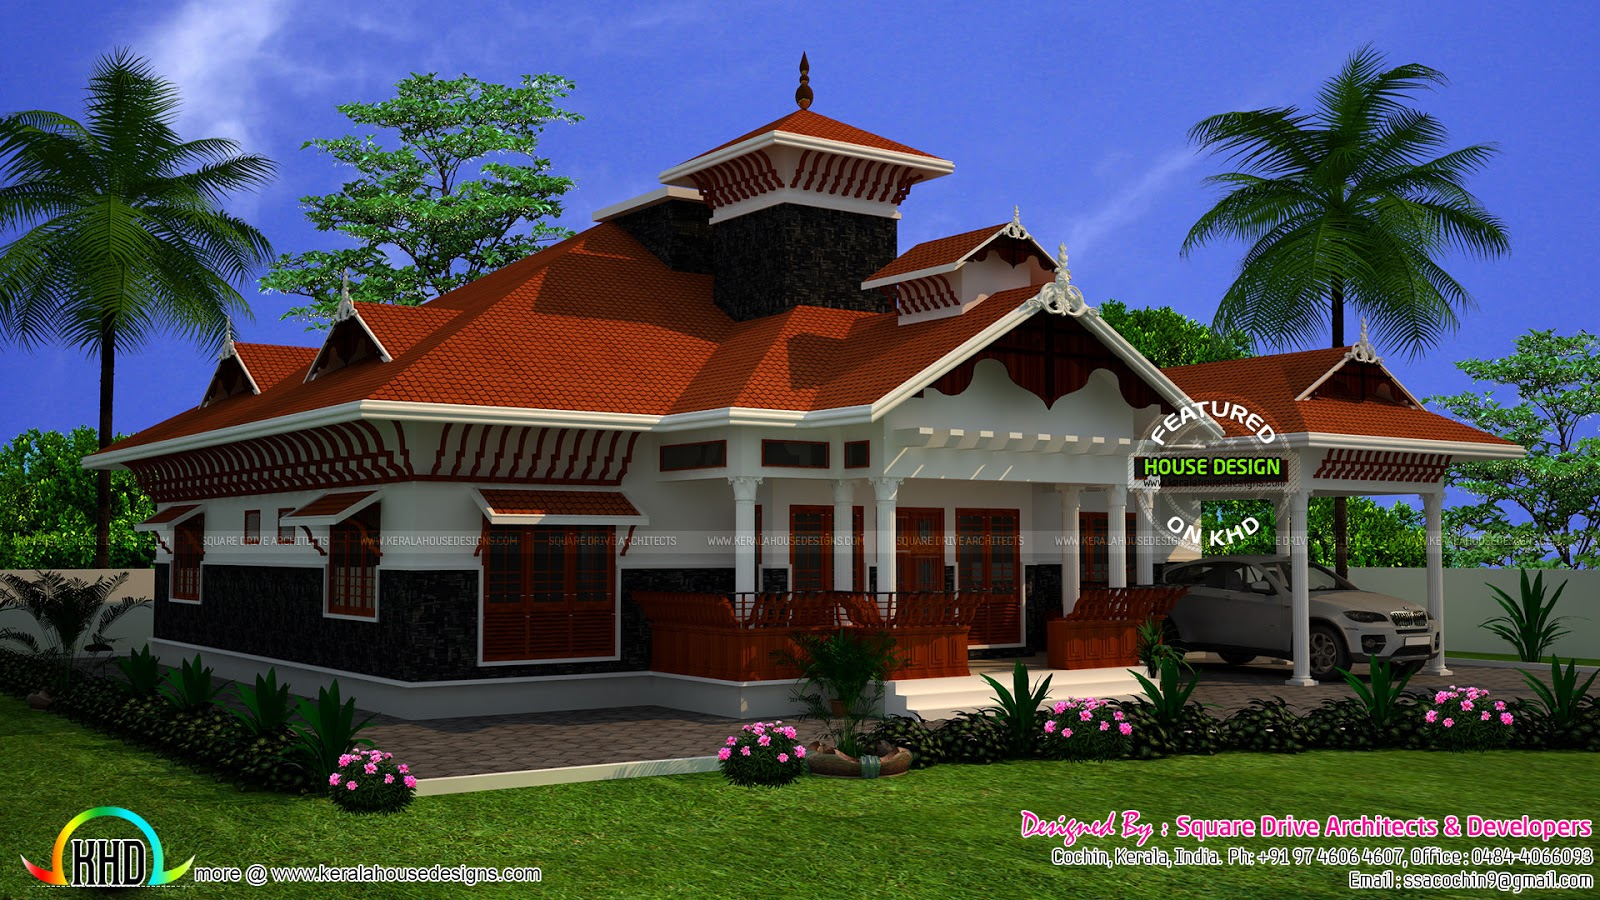 Awesome kerala home with interiors kerala home design for Kerala traditional home plans